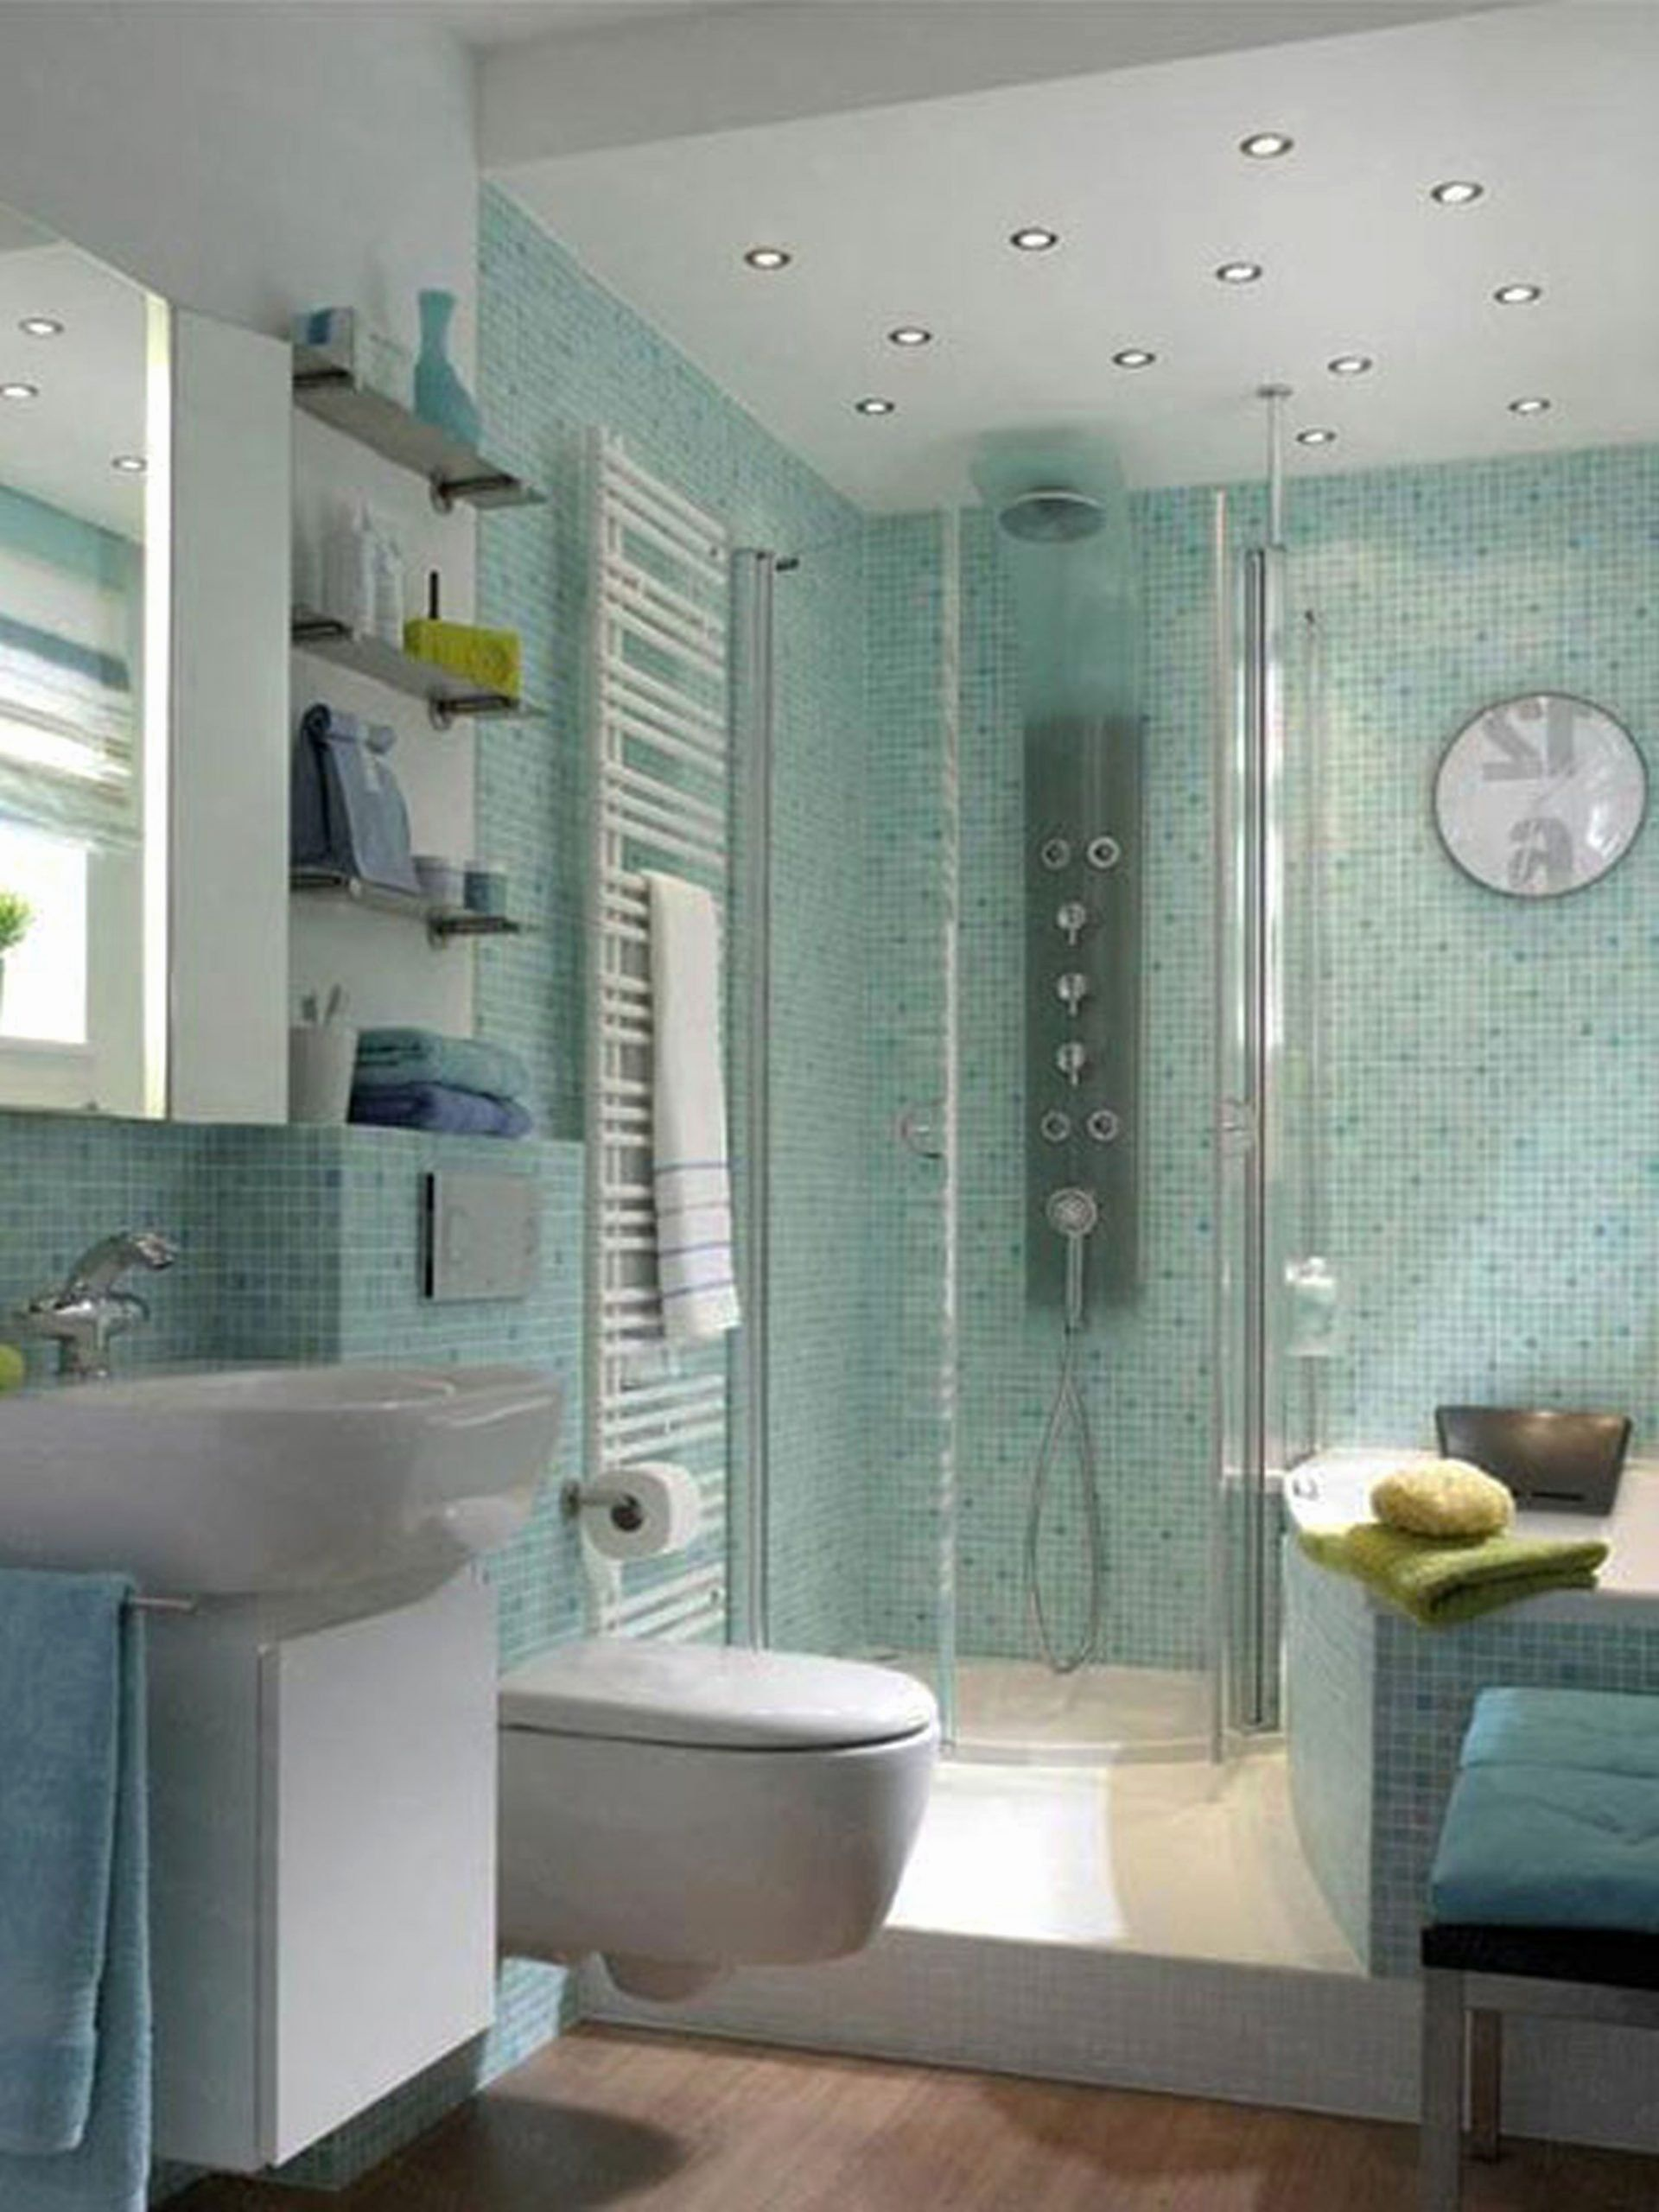 Bathroom Remodel software Free Awesome Bathroom Trends ...